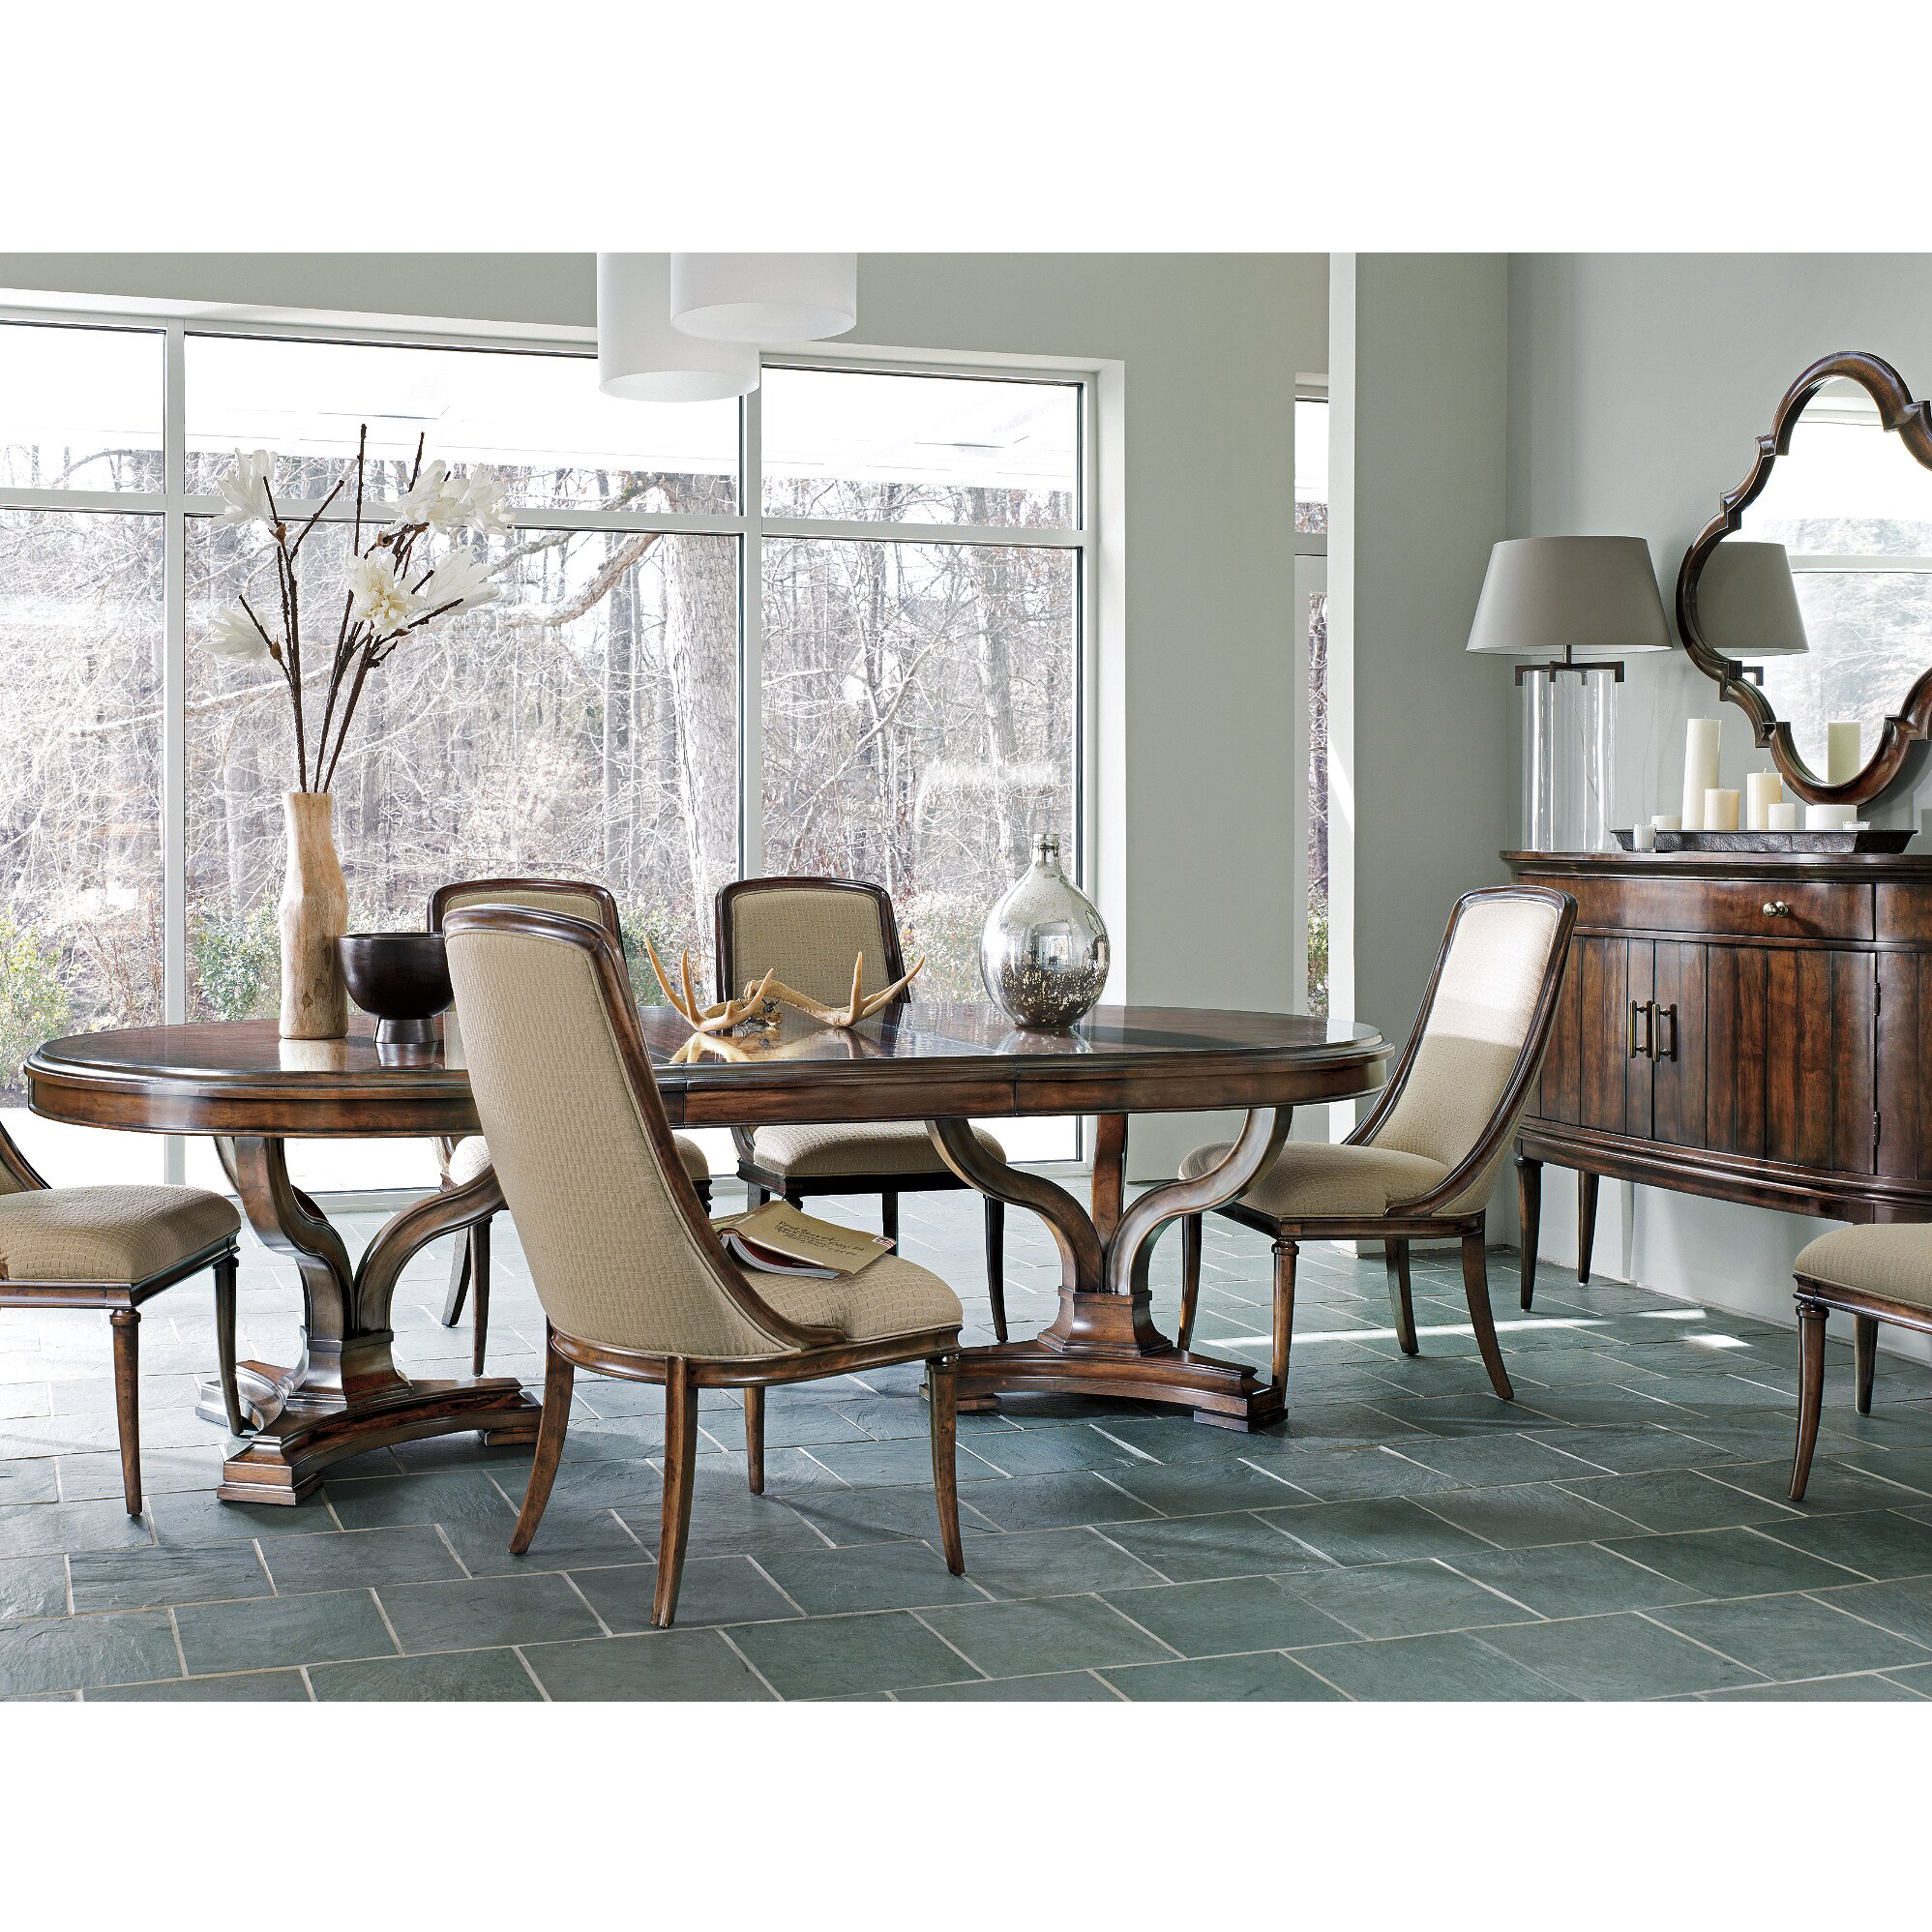 Stanley avalon heights dining table wayfair for Stanley furniture dining room sets